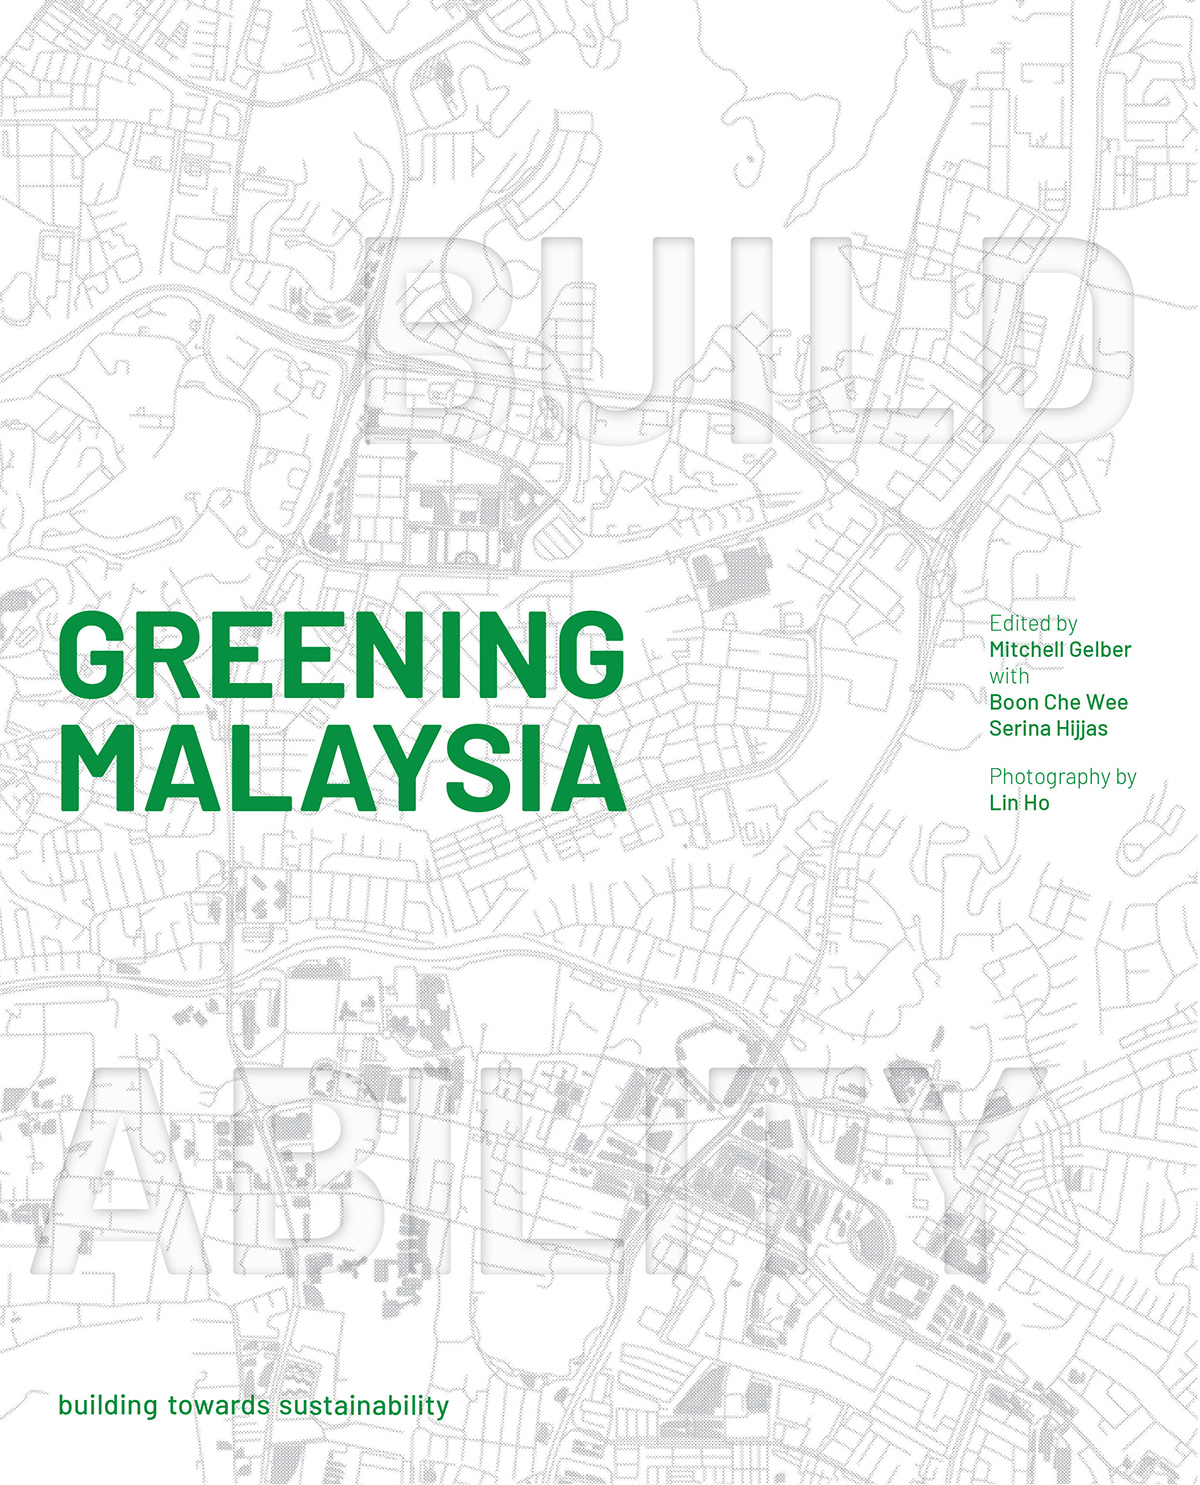 Greening_Msia_BookCover